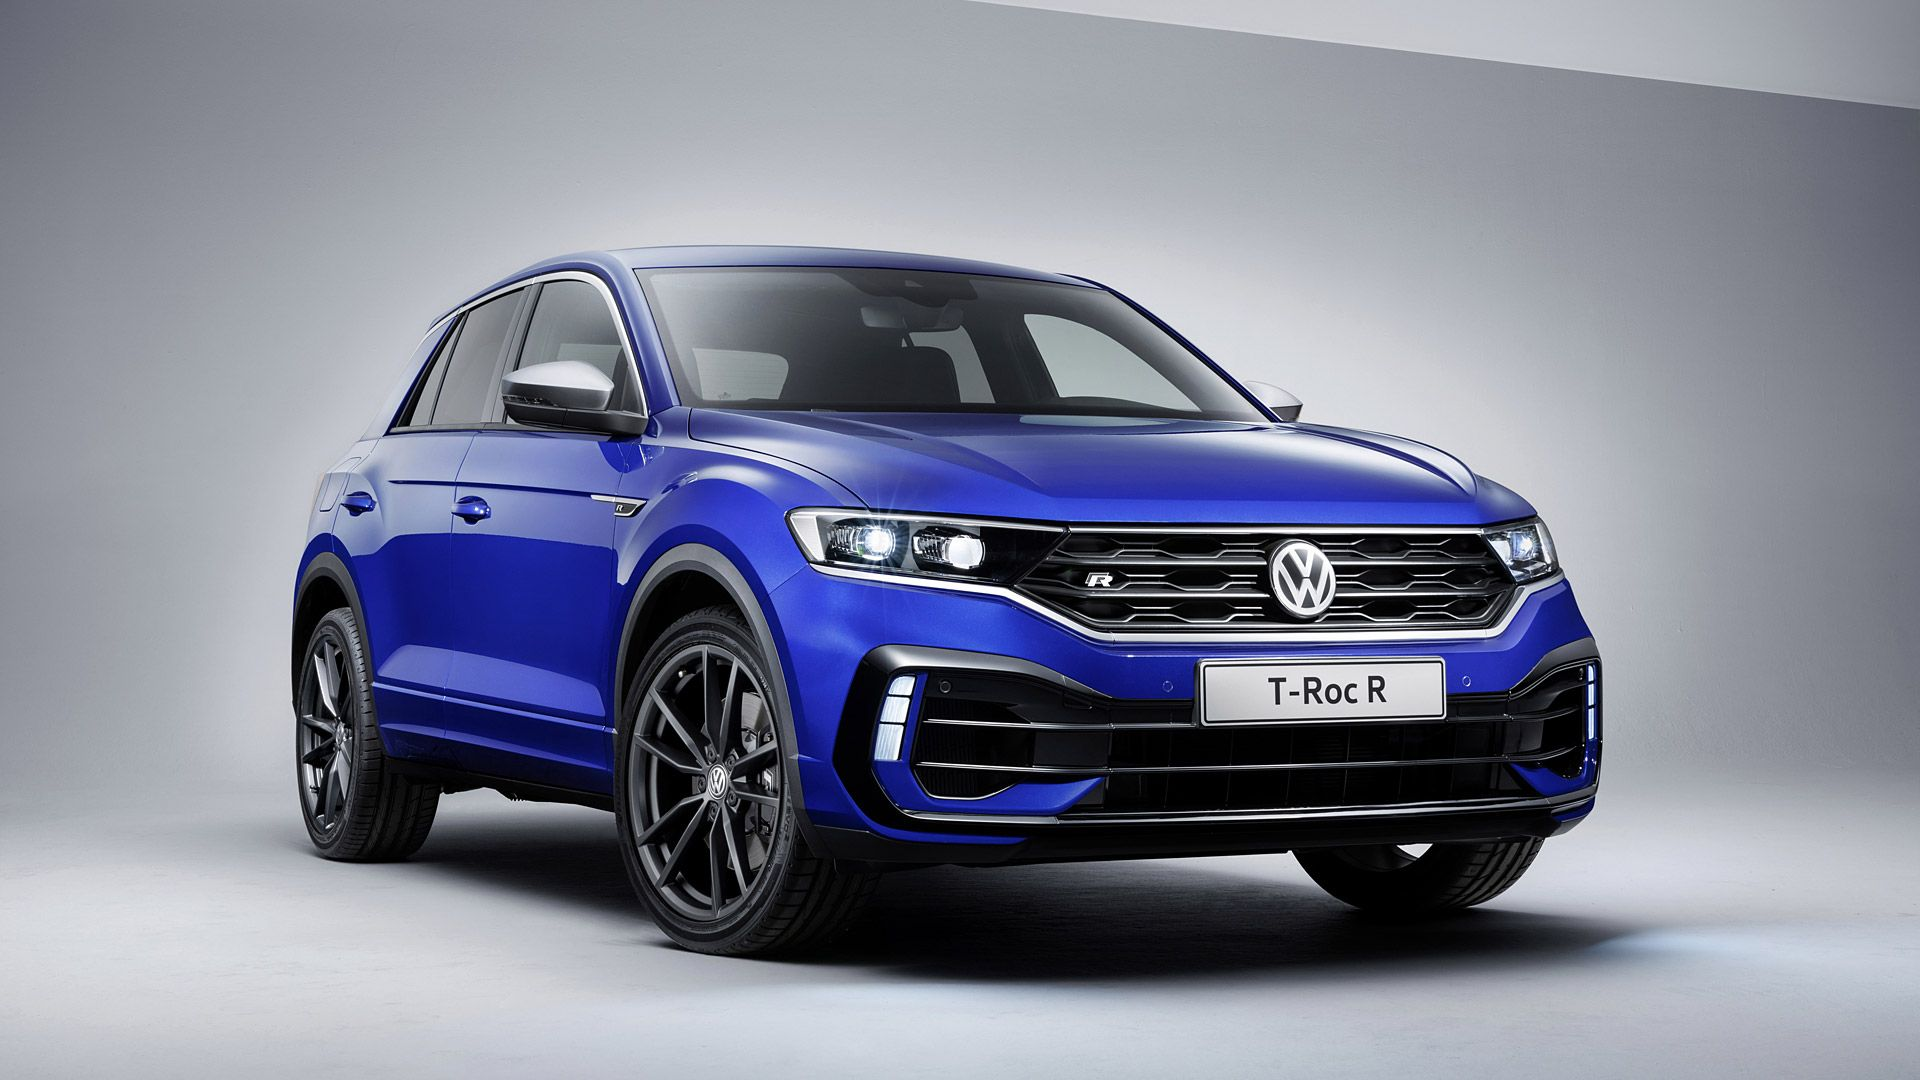 Volkswagen Have Given The Compact Suv T Roc Some Performance Credentials Transplanting The Turbocharged 4 Cylinder Engine F Tiguan R Volkswagen Car Volkswagen